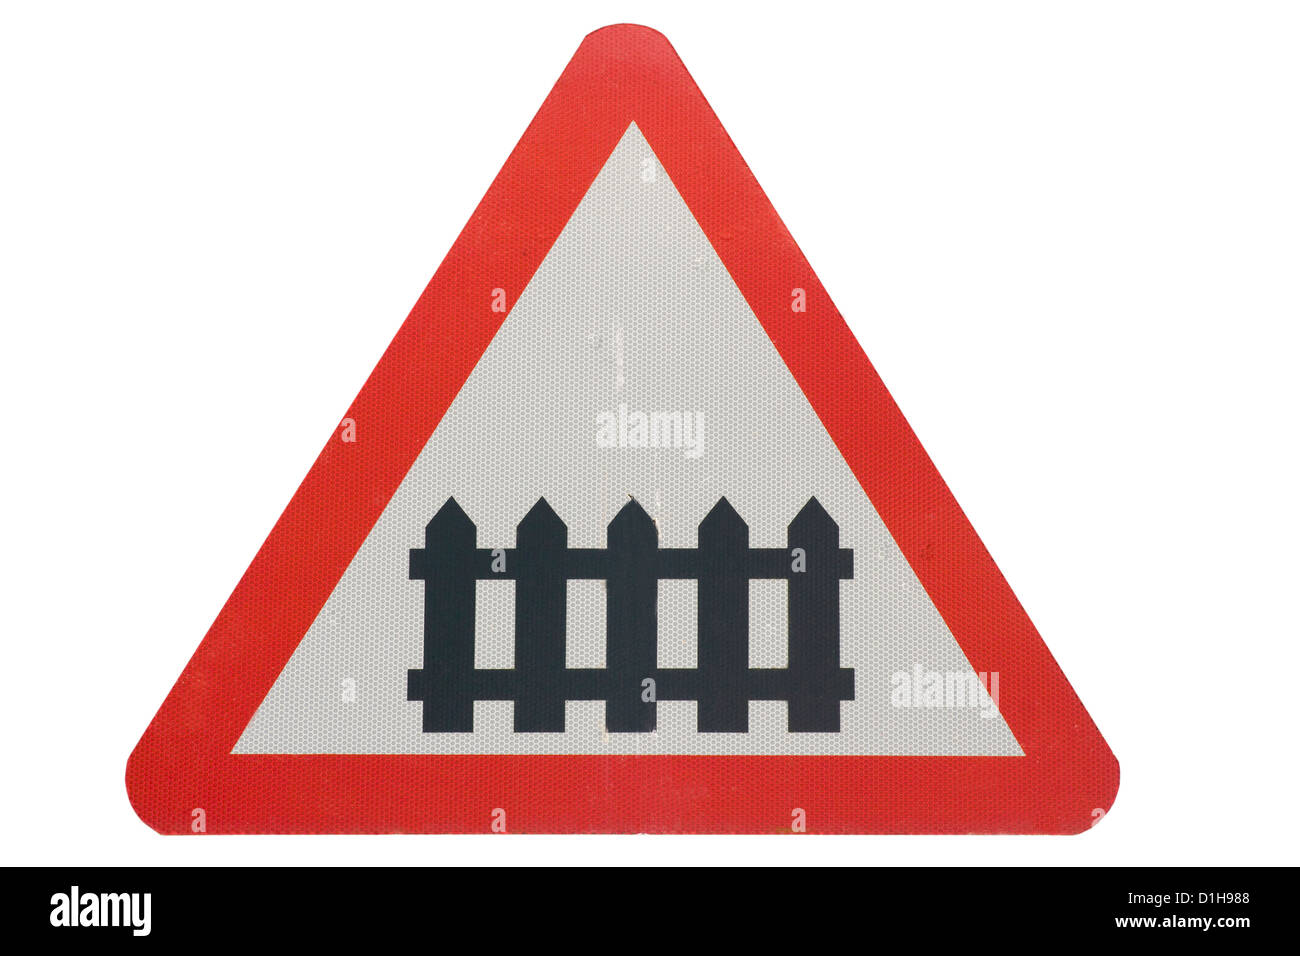 Level Crossing Road Sign - Stock Image